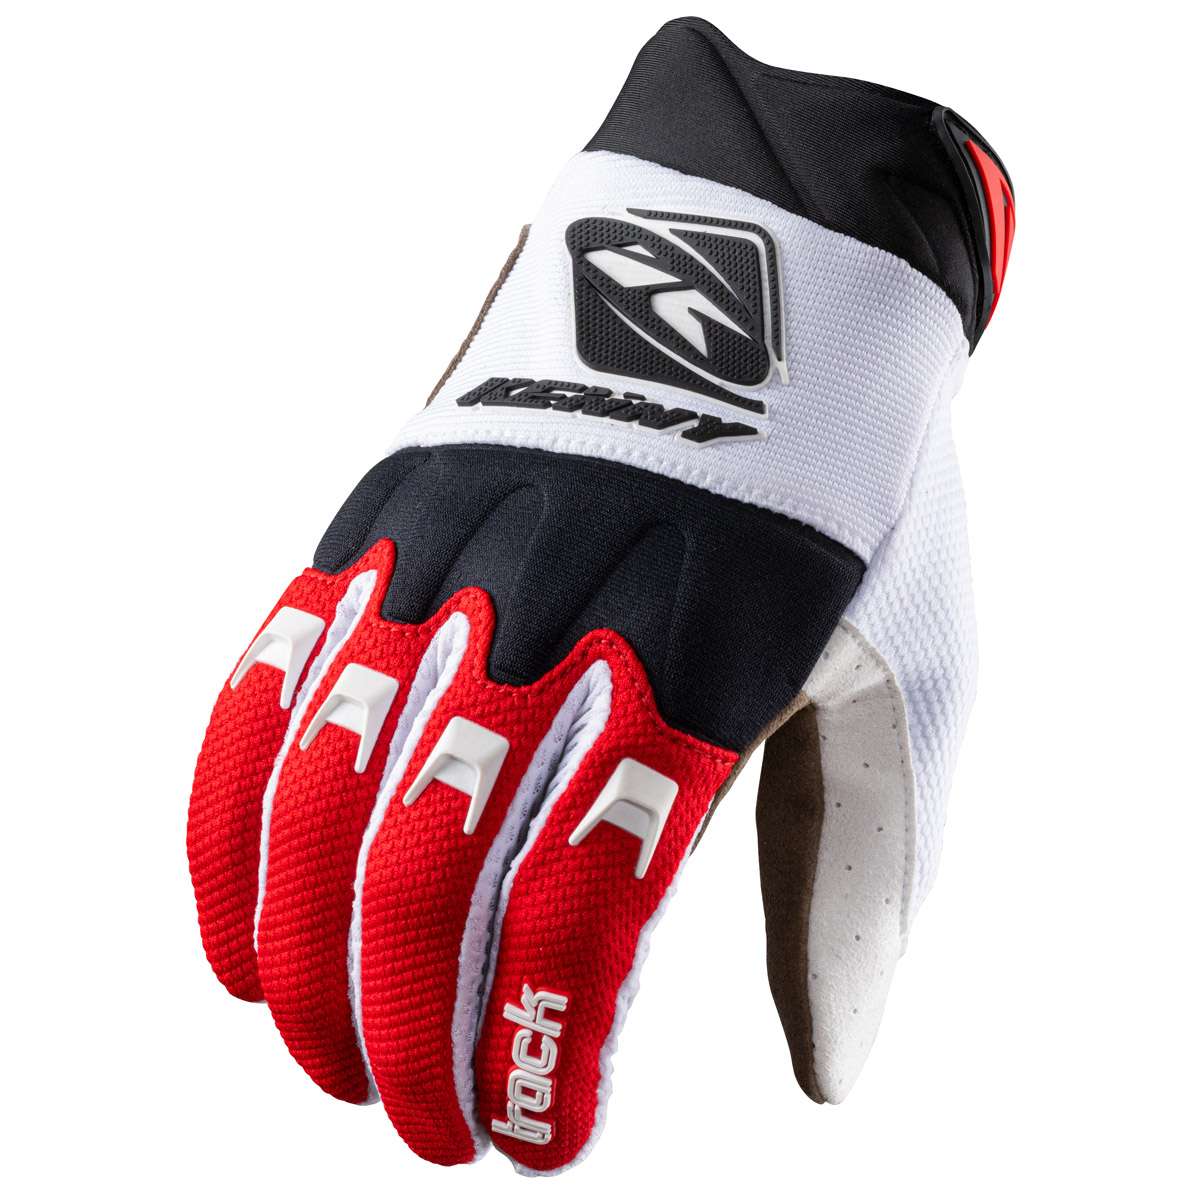 211-2803011 2021 Kenny Racing Track Gloves White Red Black Handschoenen Gants Handschuhe